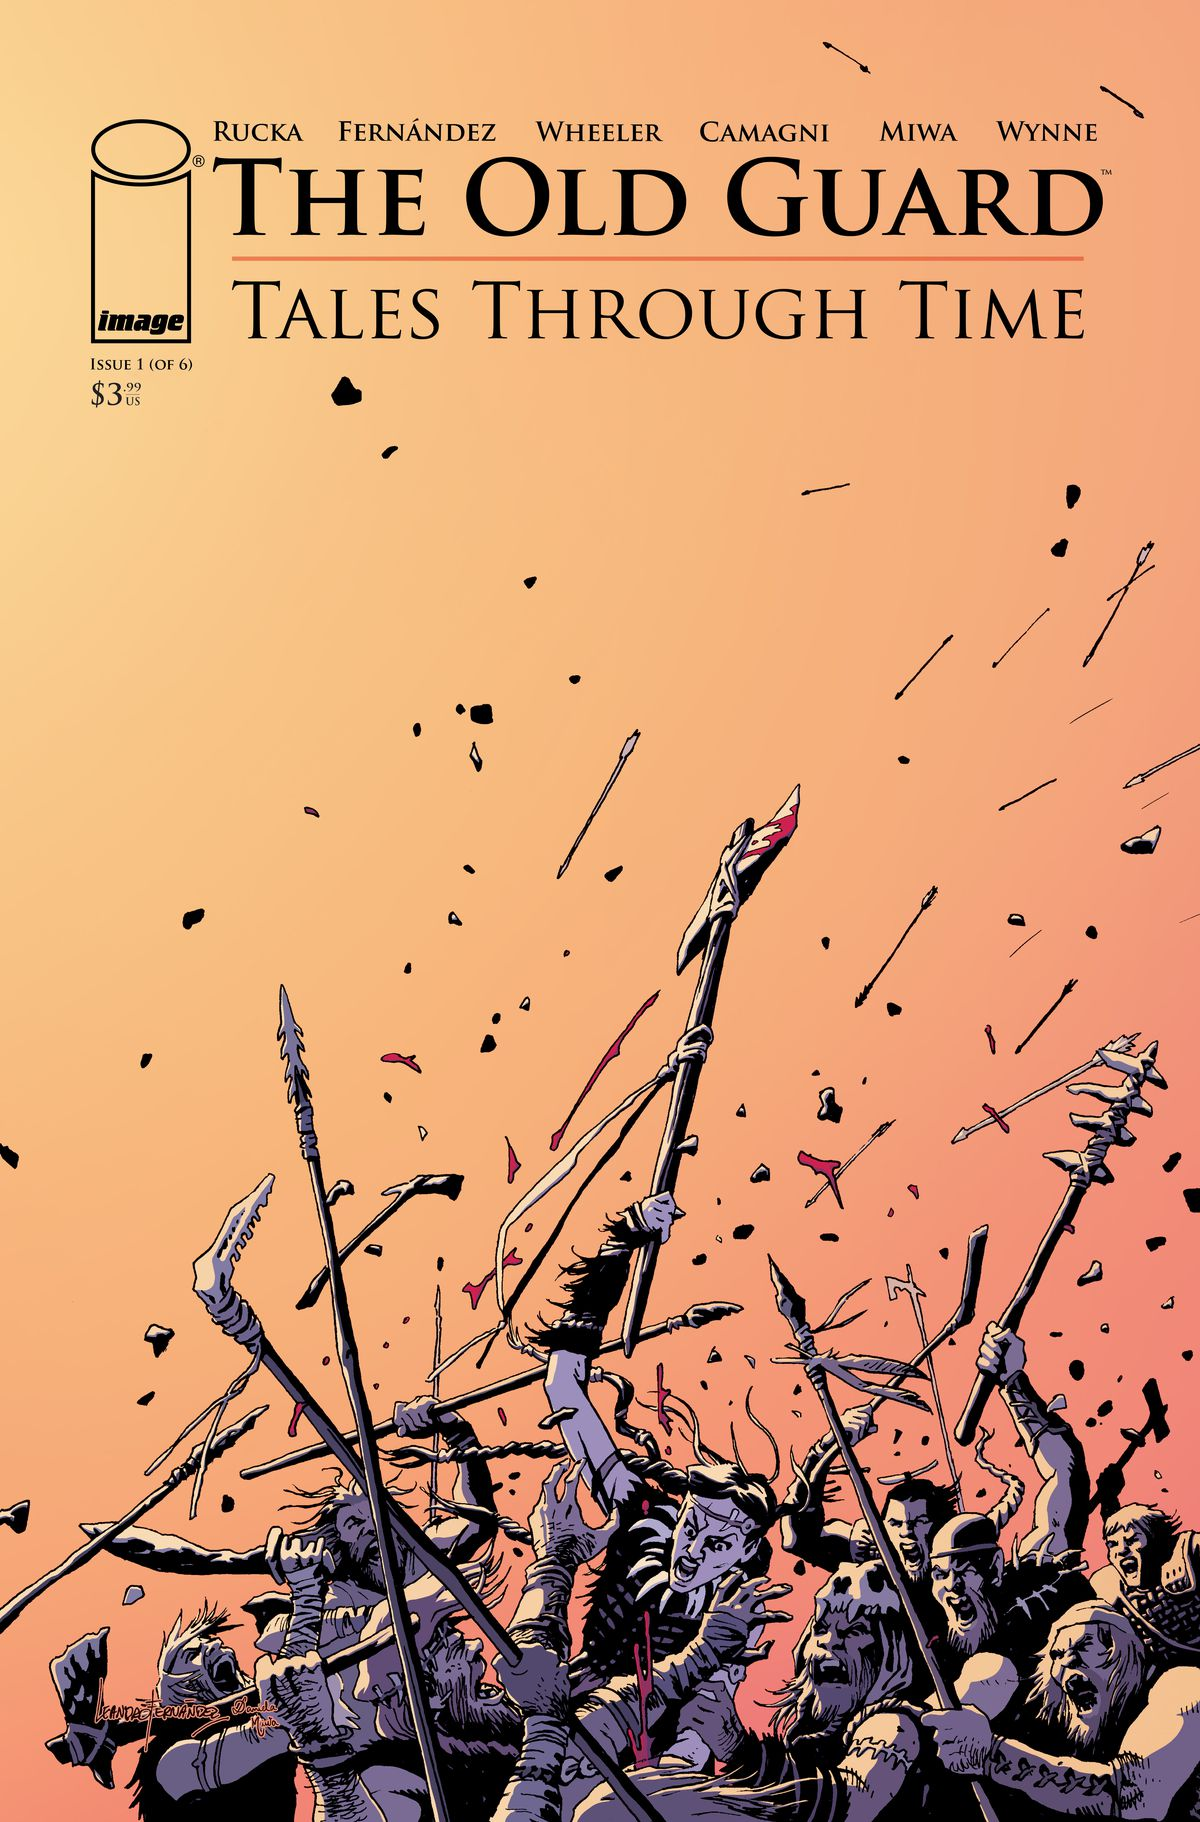 The Old Guard: Tales Through Time issue #1 cover - A war breaks out with clubs and spears